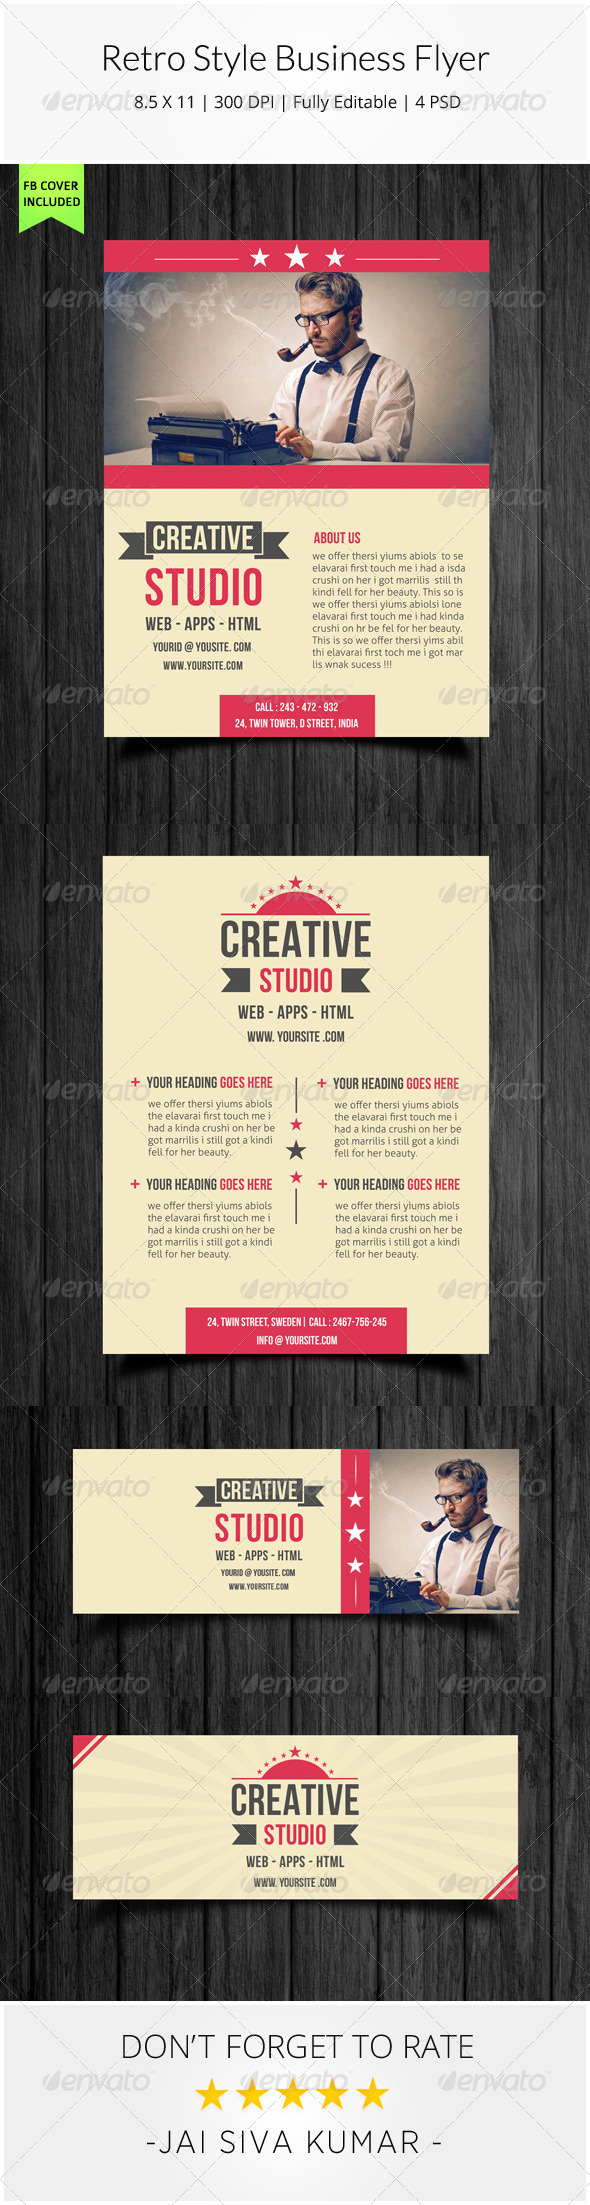 GraphicRiver Retro Style Business Flyer 7872701